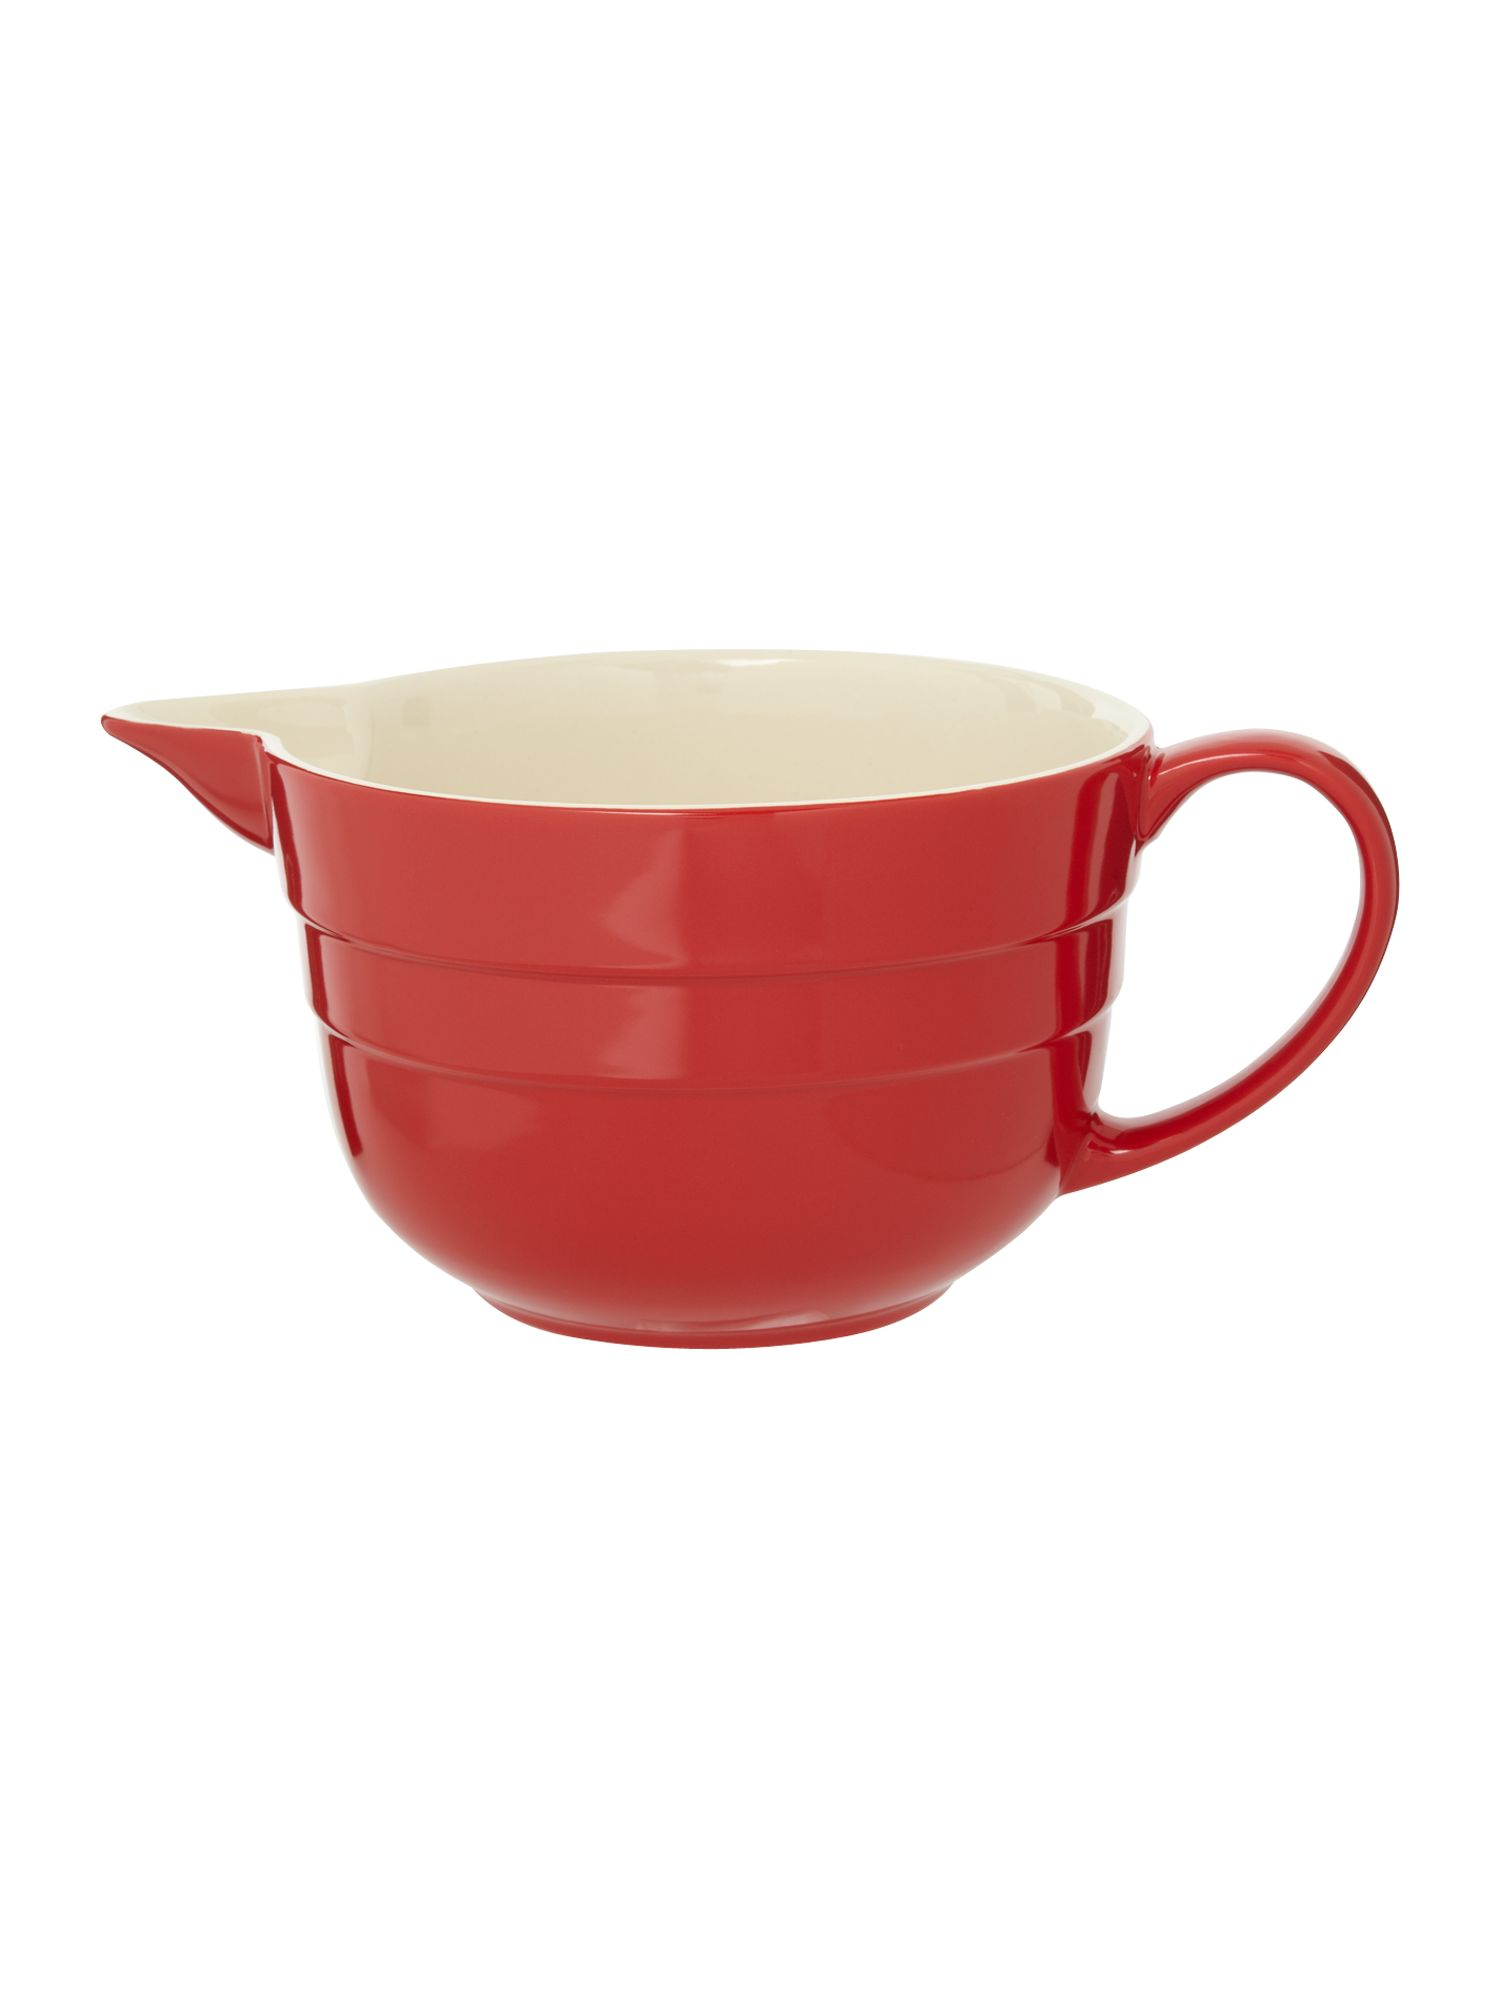 Maison batter jug, Red